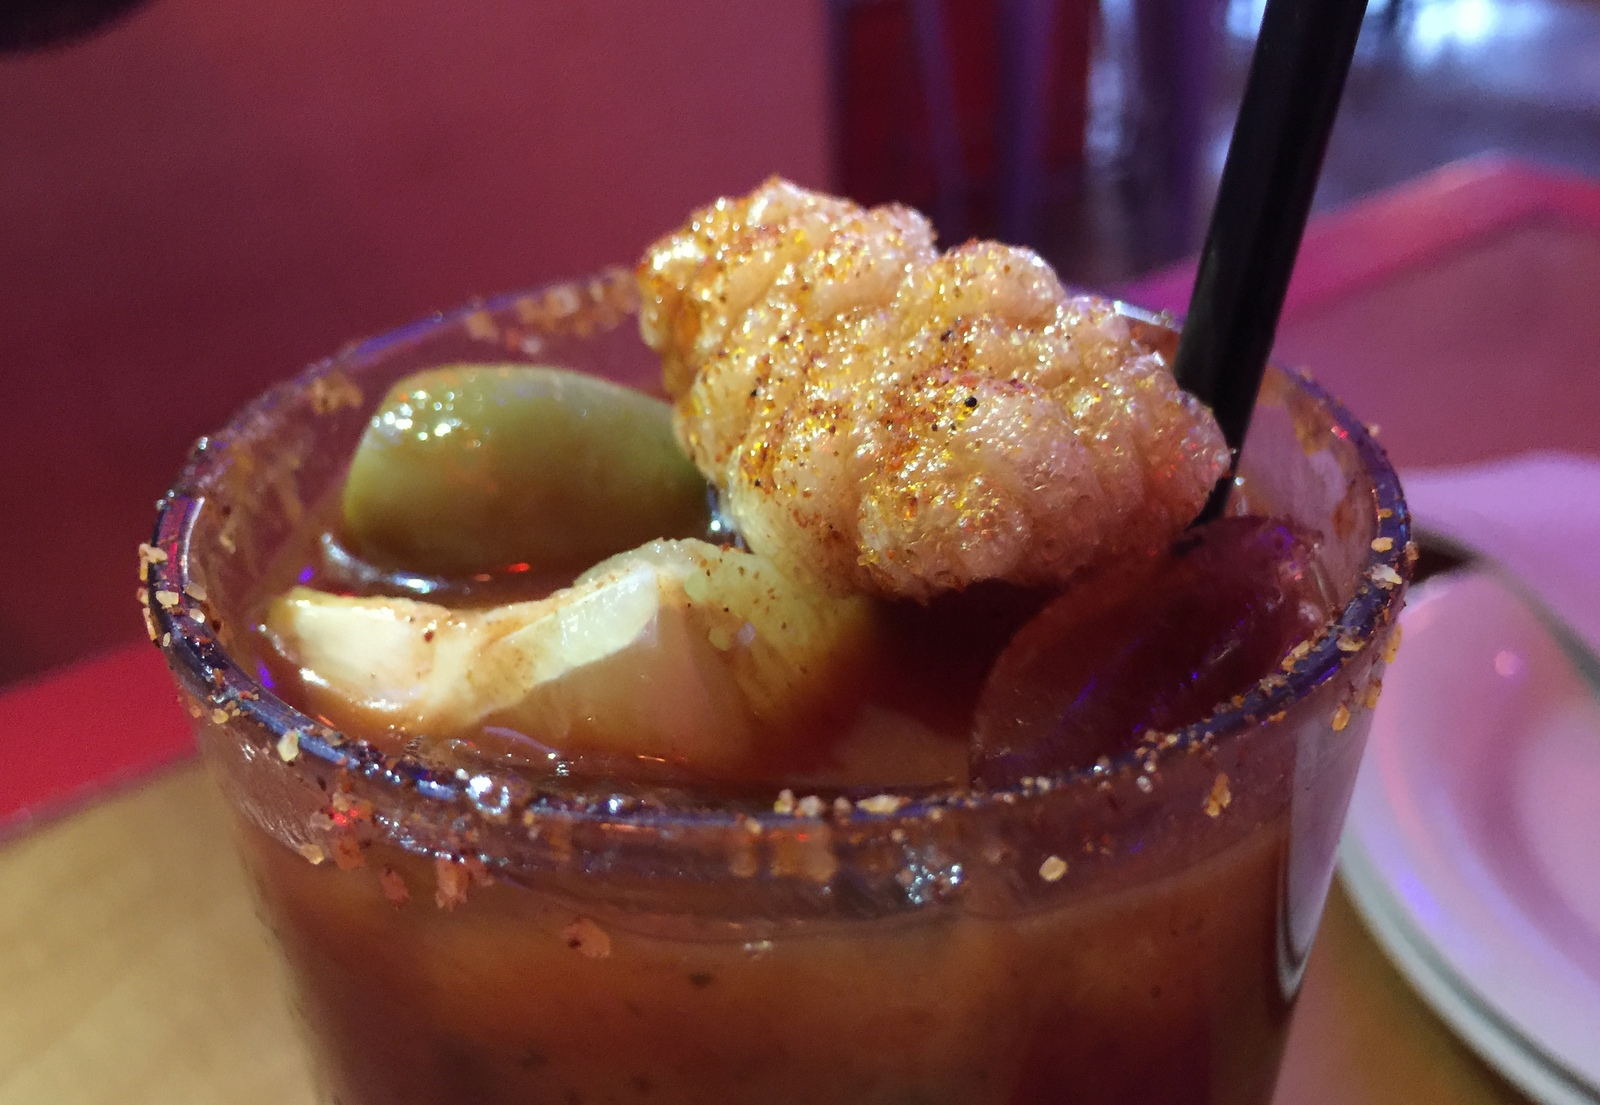 Spicy-salt-rimmed Mexican Bloody Mary at Deep South Taco. (Andrew Galarneau/Buffalo News)